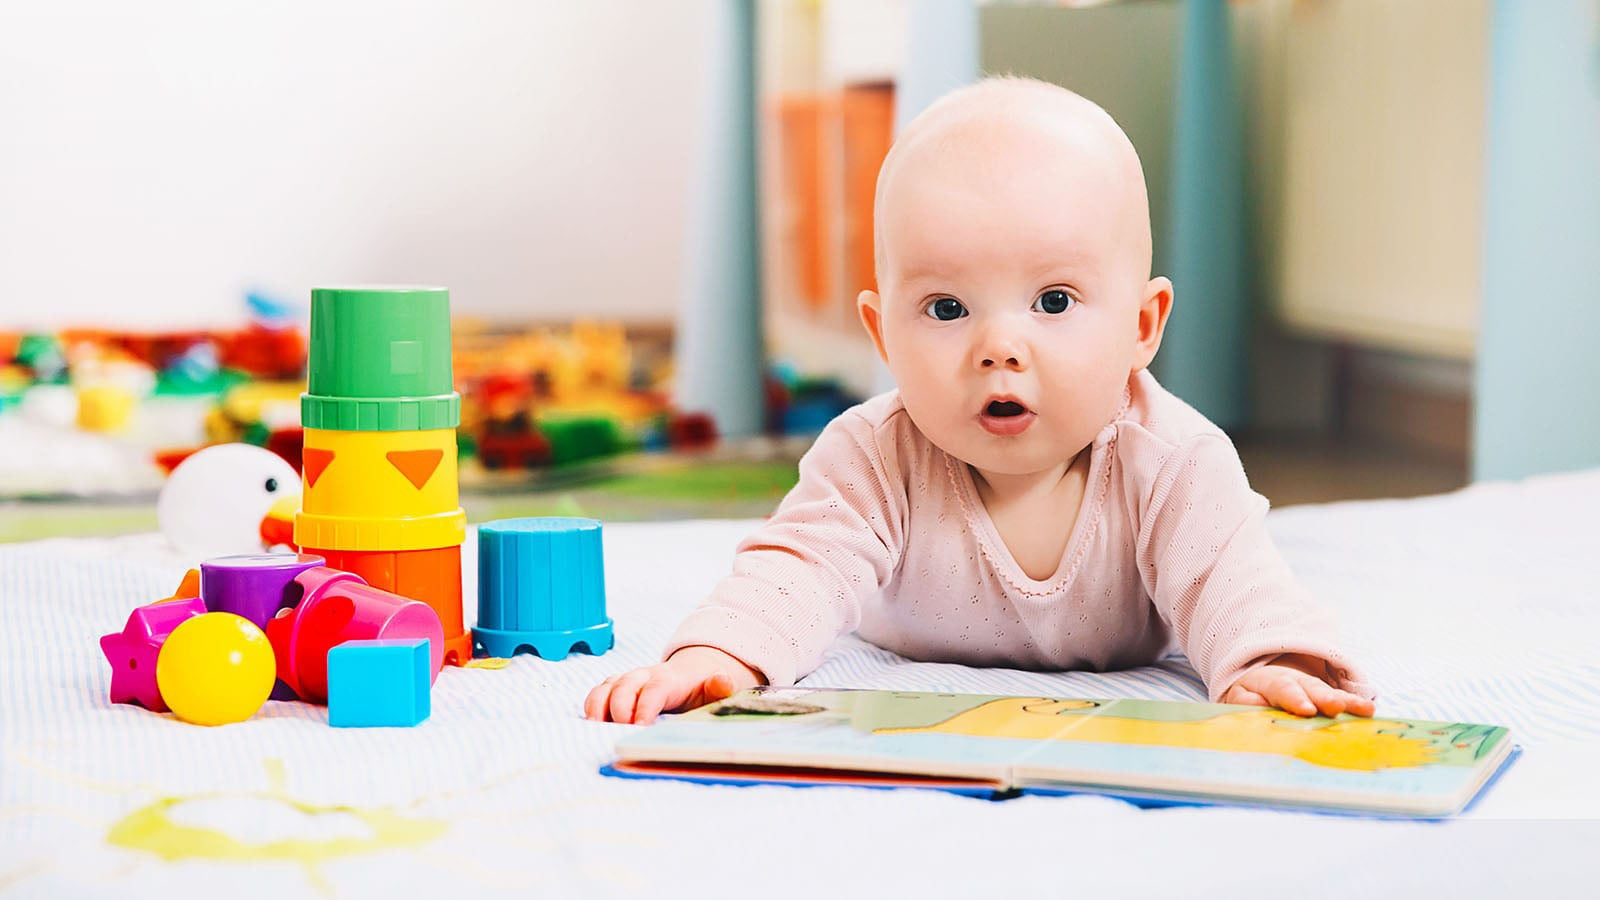 Baby led on floor with an open book and stacking toys